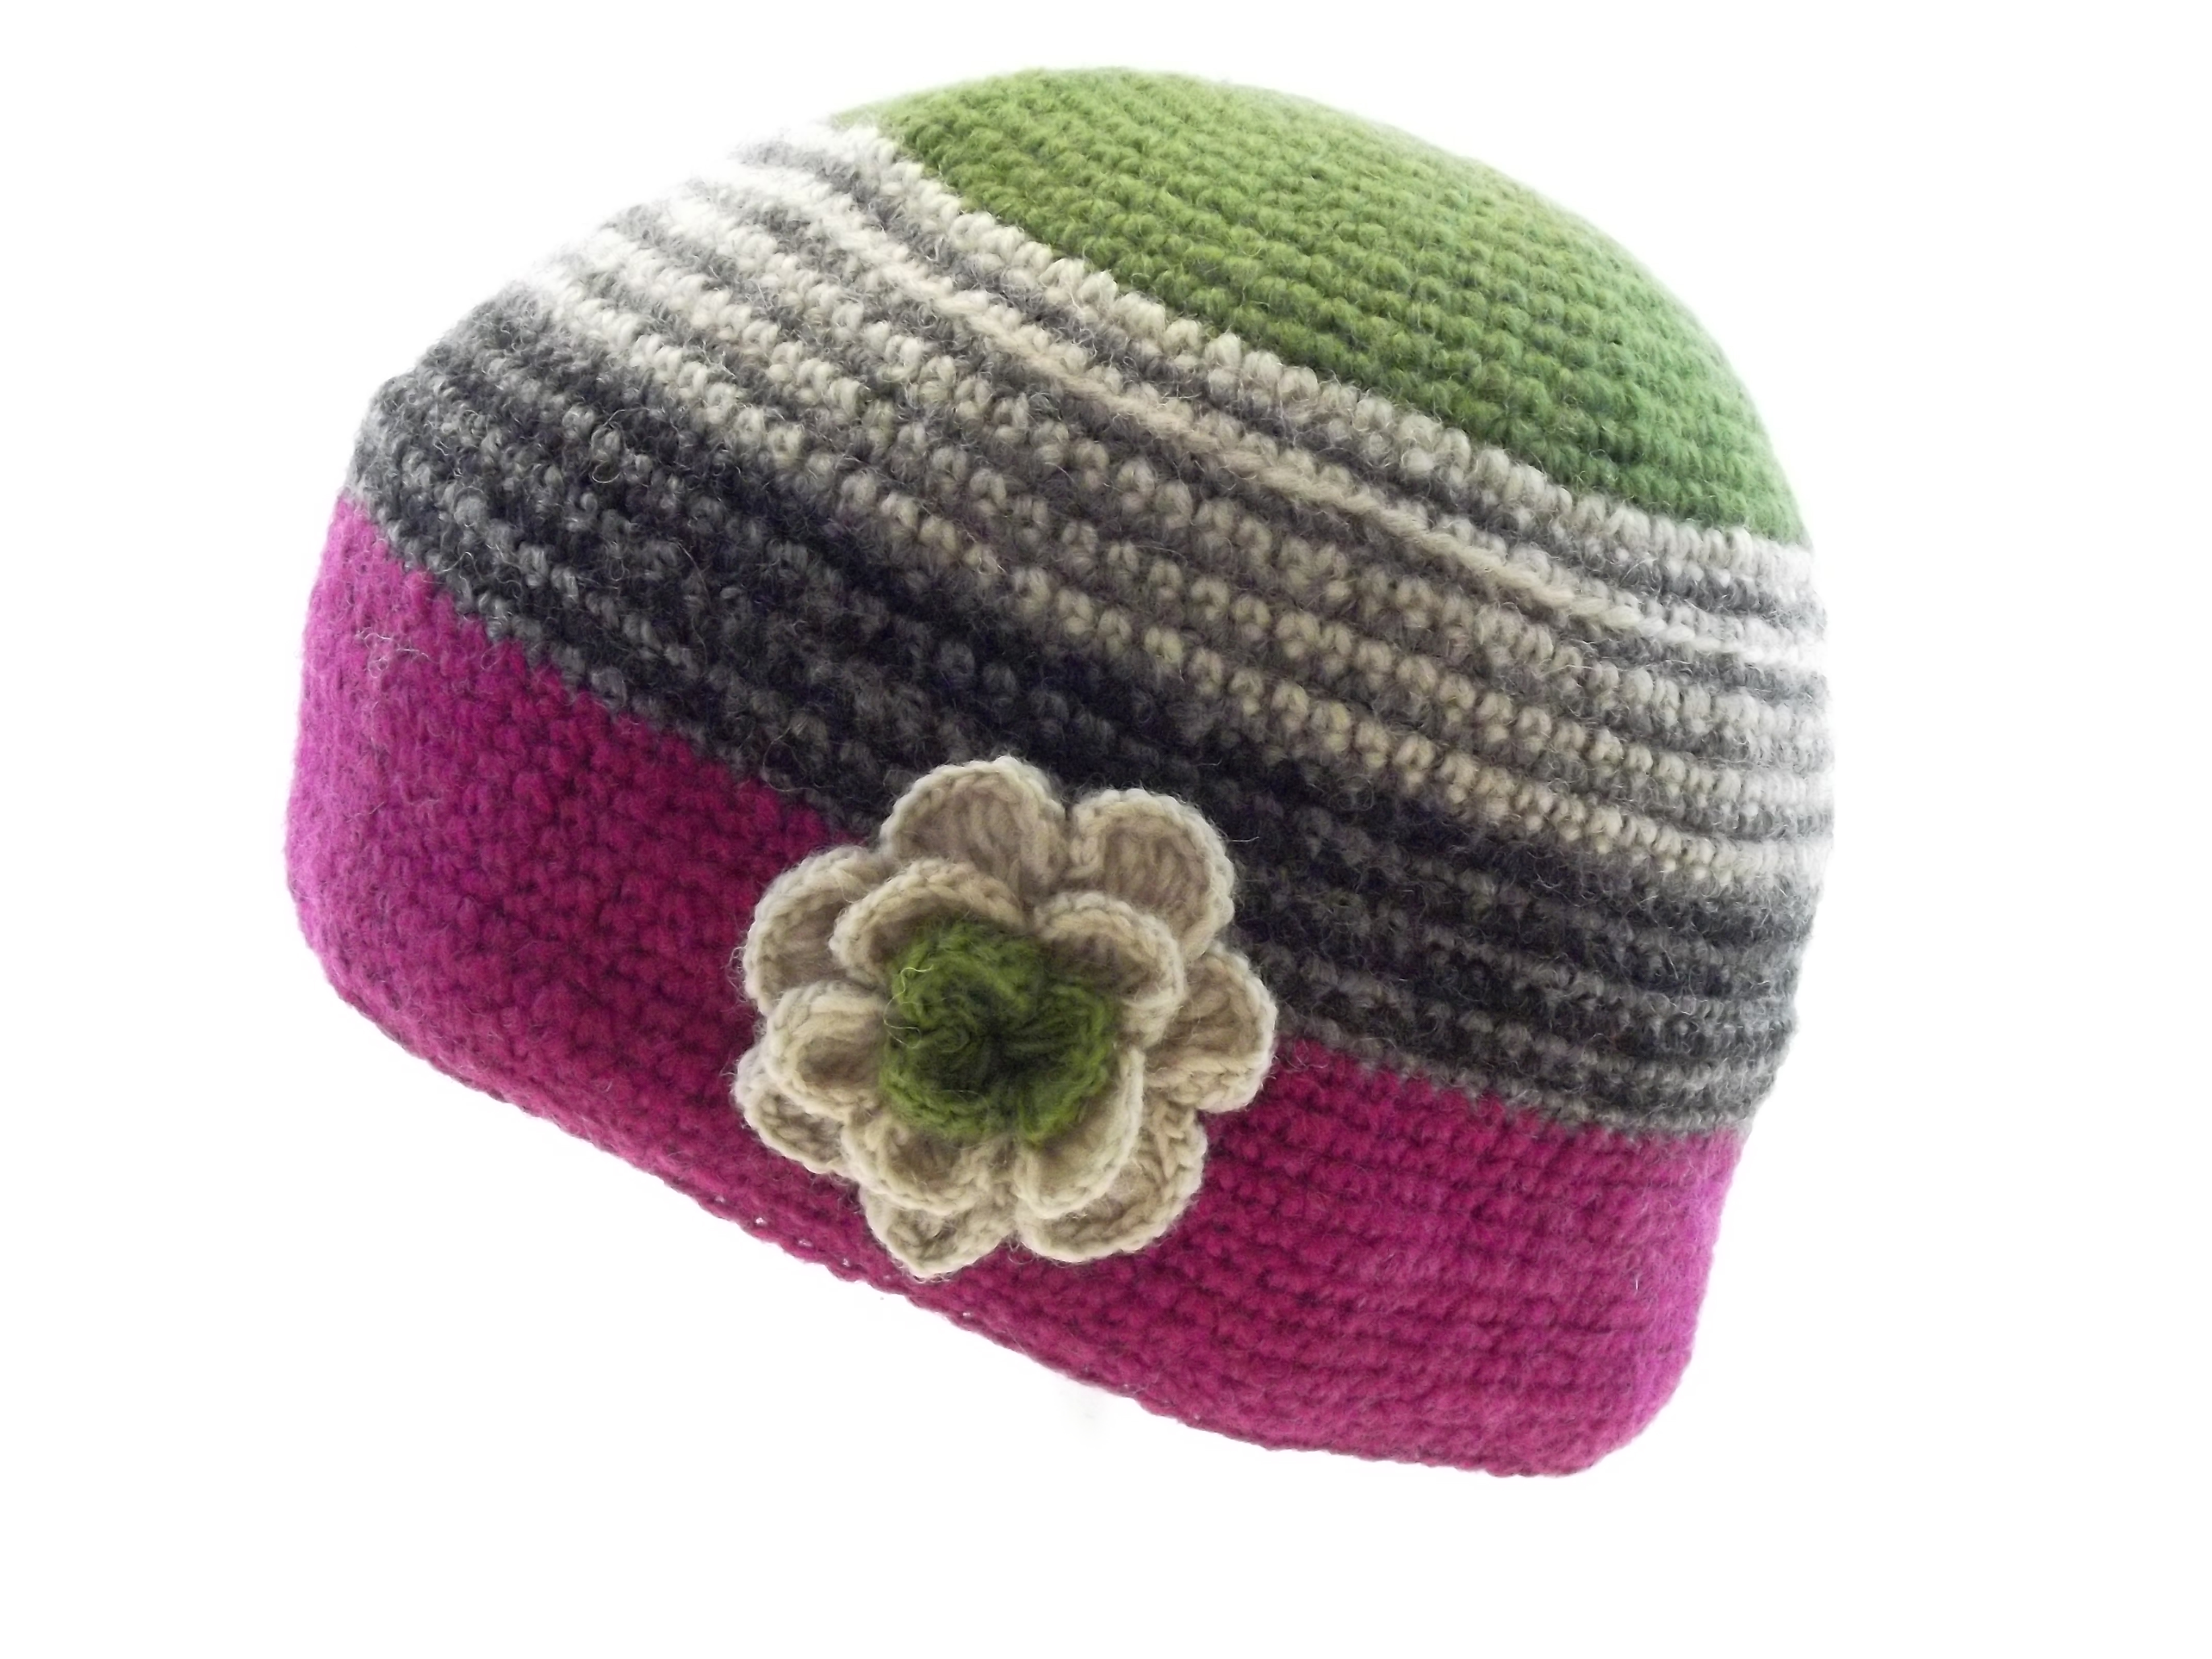 Crochet Cap with Flower Corsage Pink Green 100% Wool